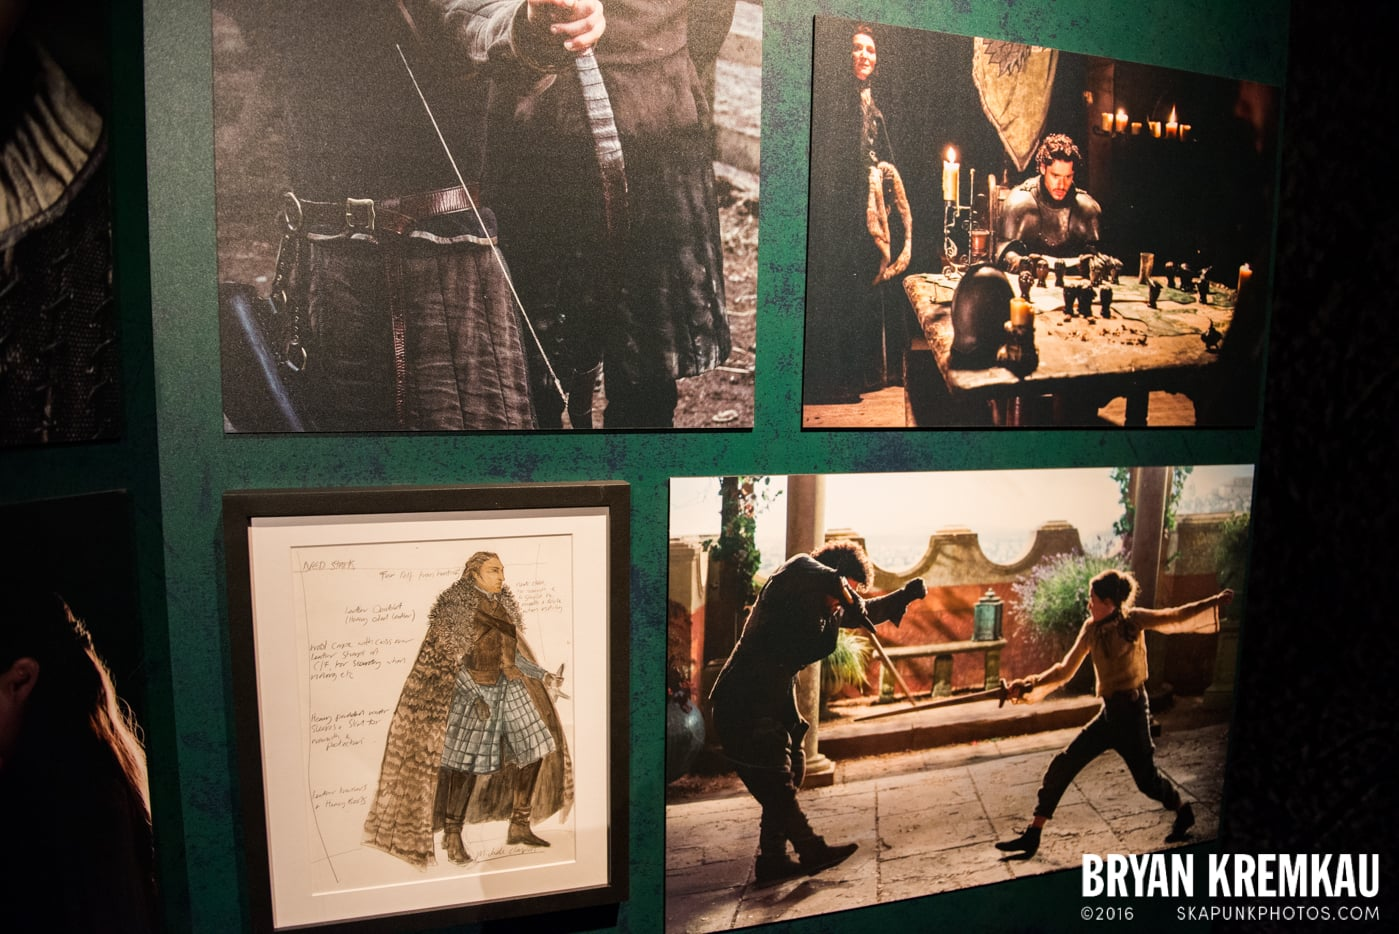 Game Of Thrones Exhibition @ New York, NY - 3.29.13 (37)